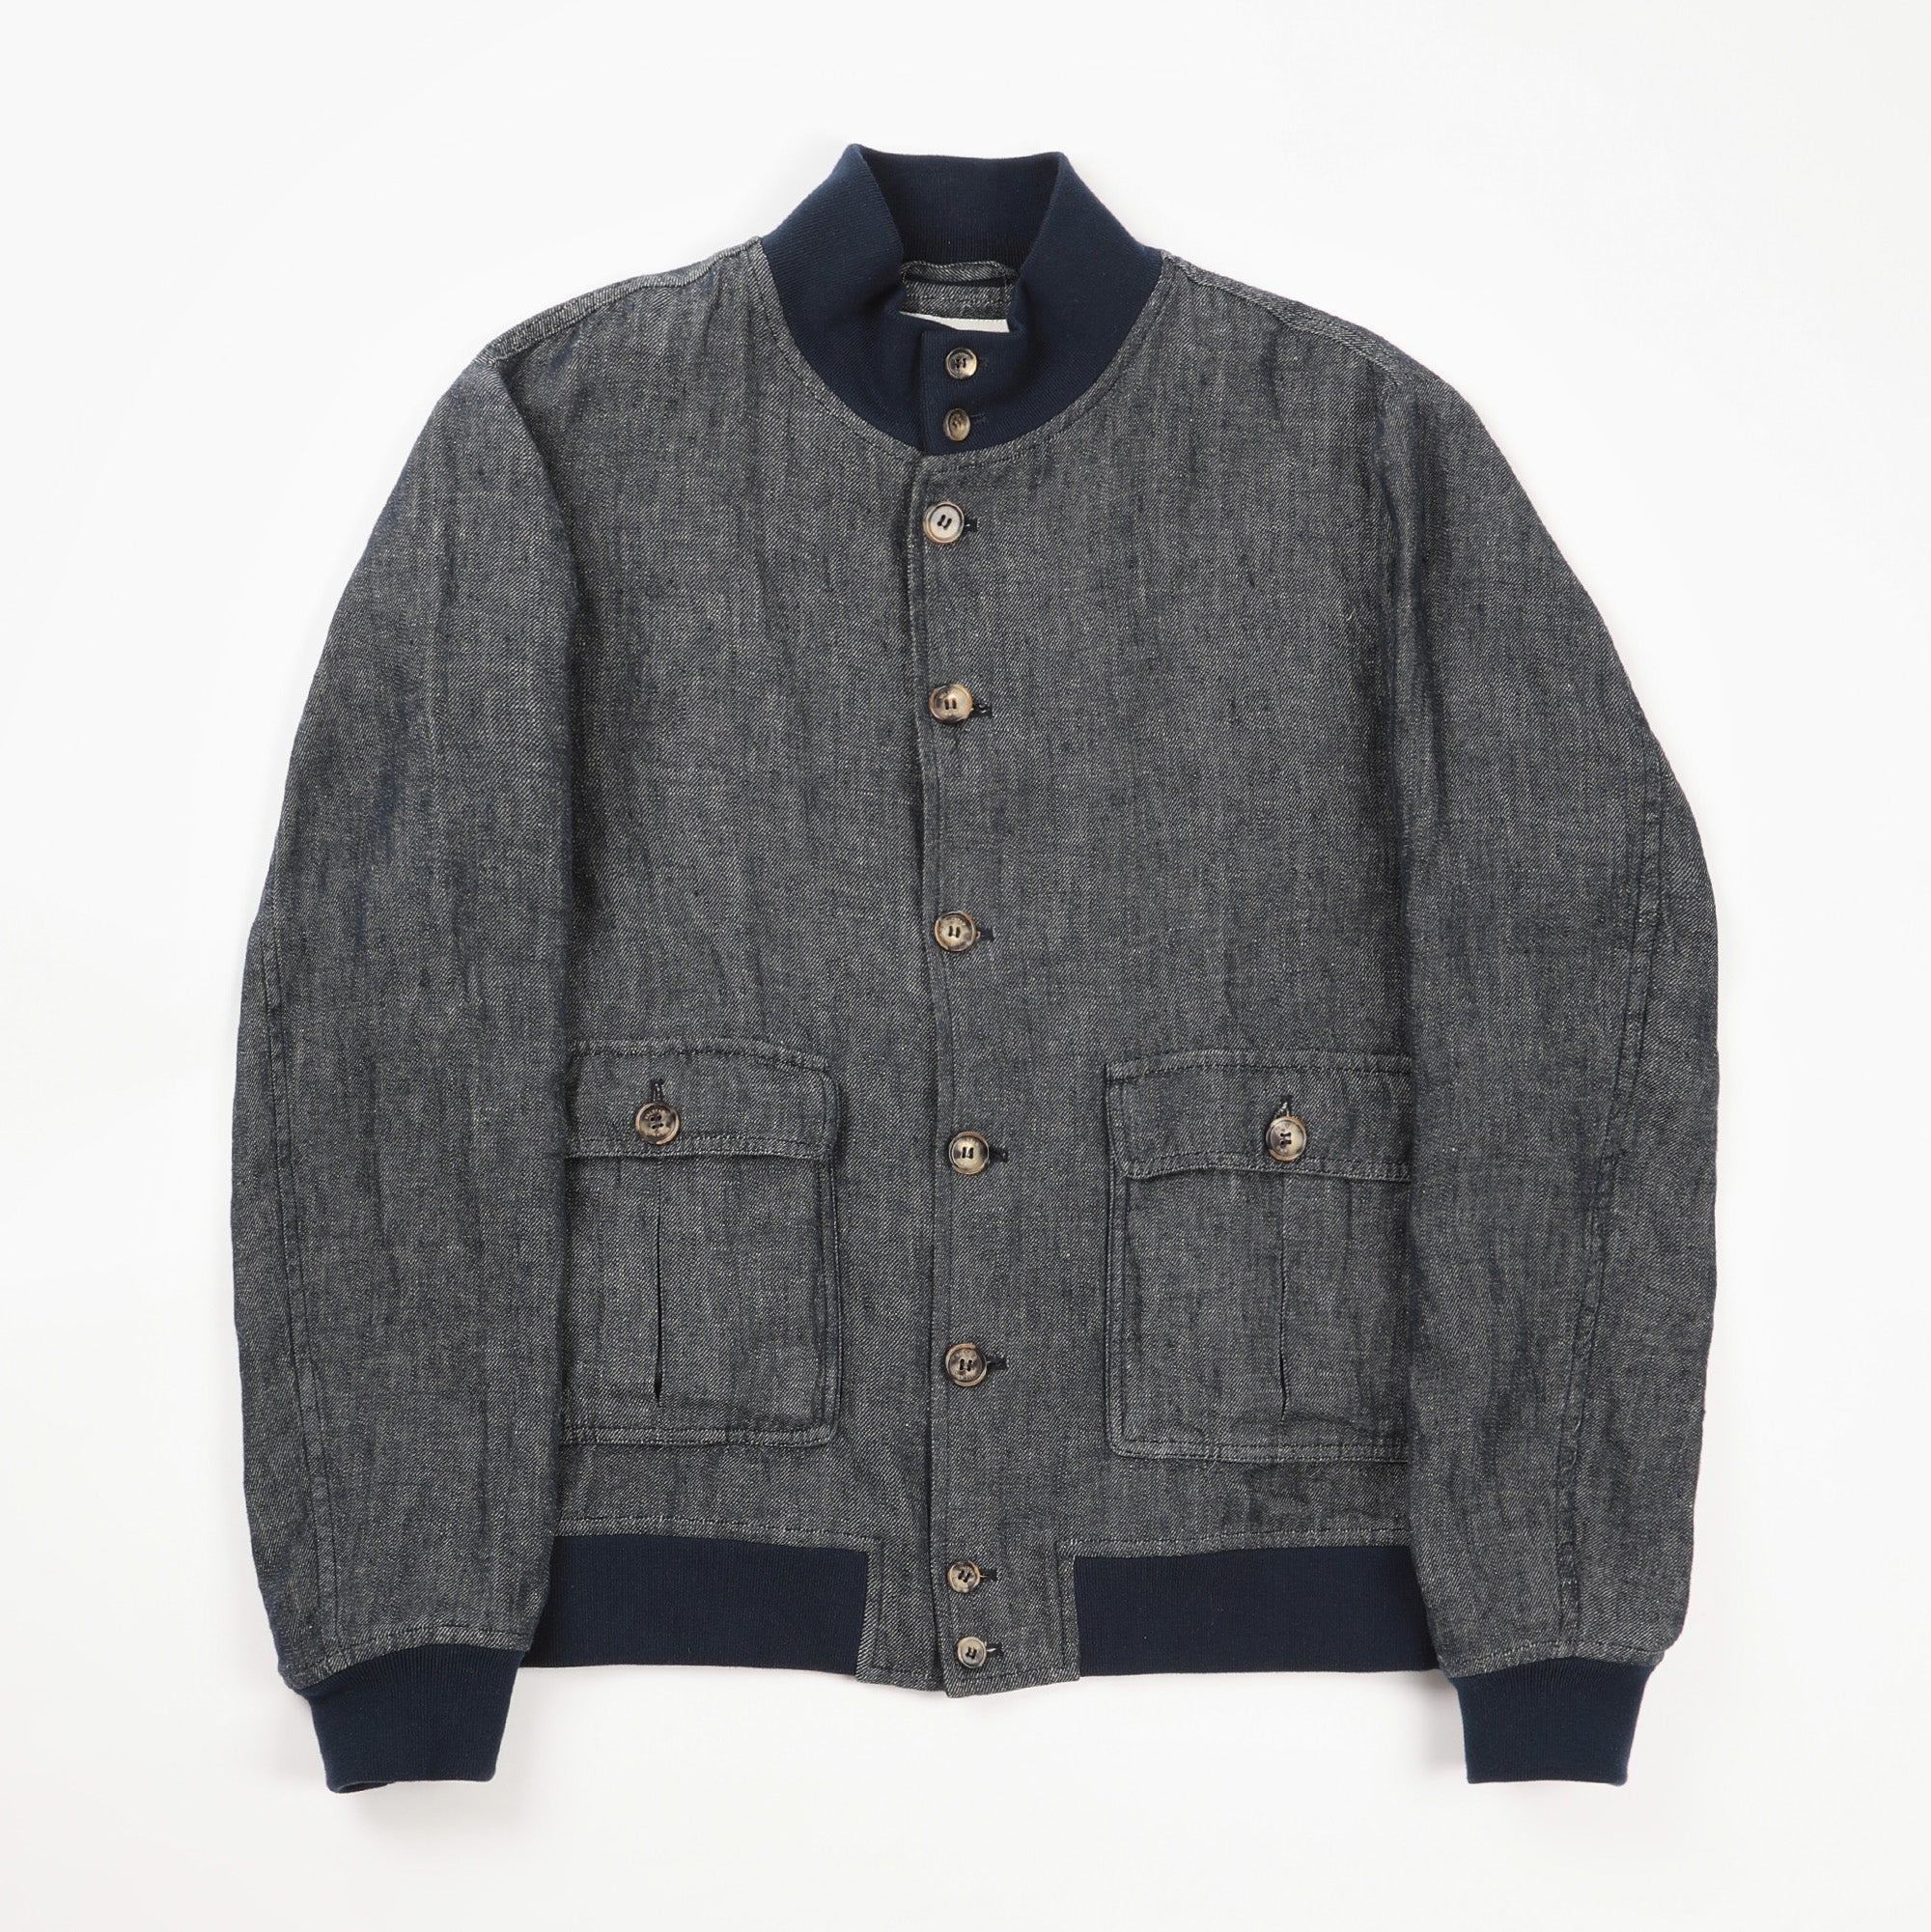 Valstar Japan Linen Cloth Jacket